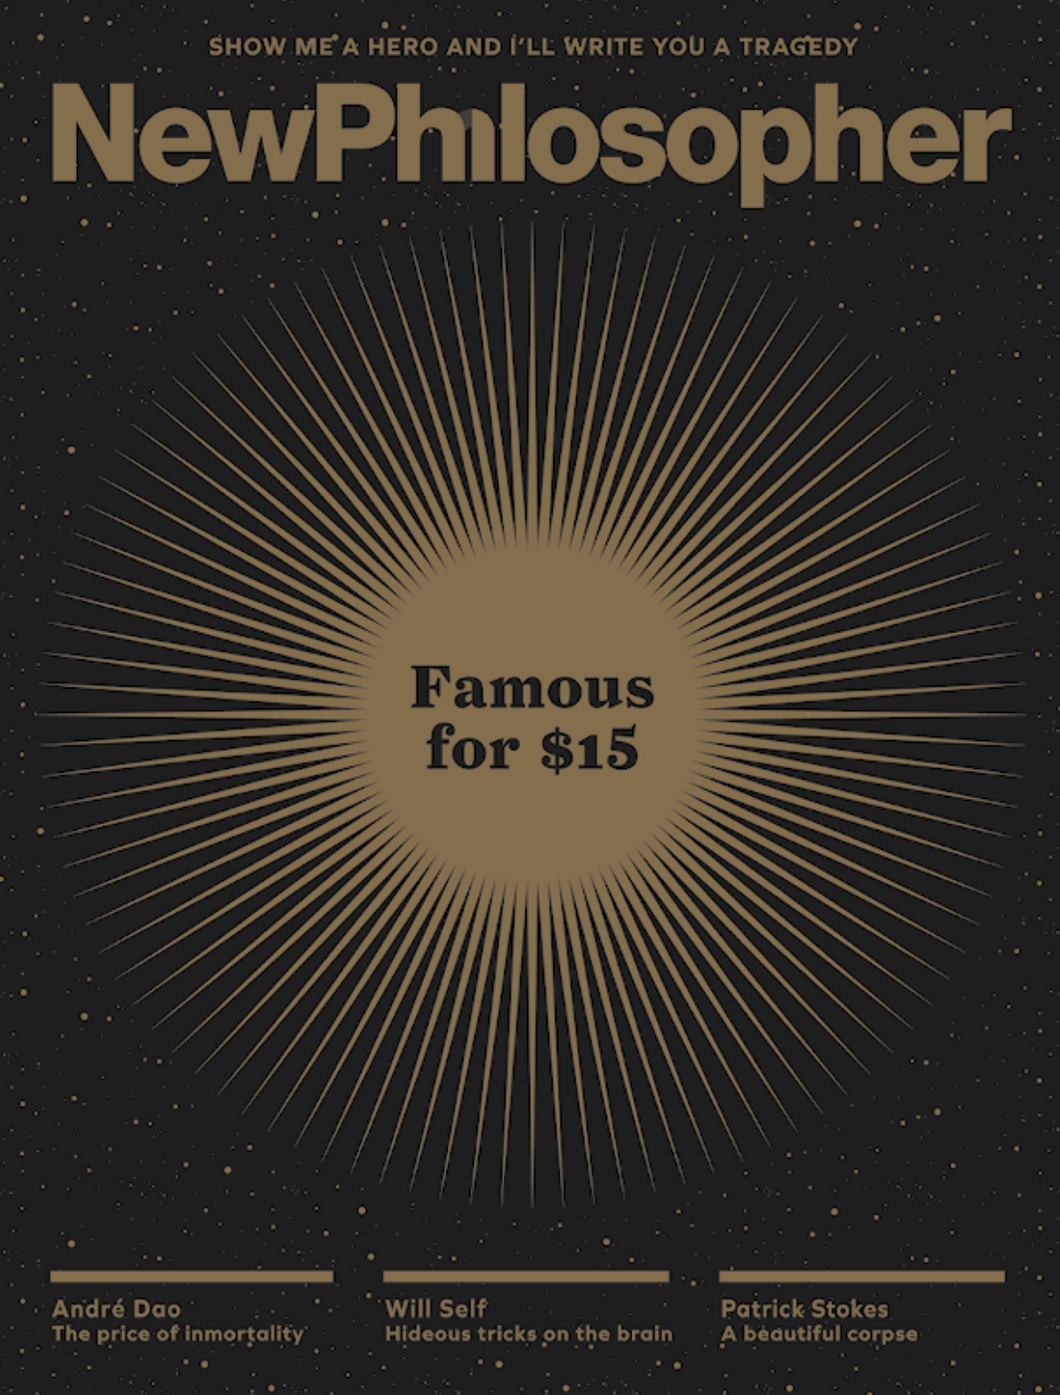 New Philosopher Magazine Issue #10 Fame